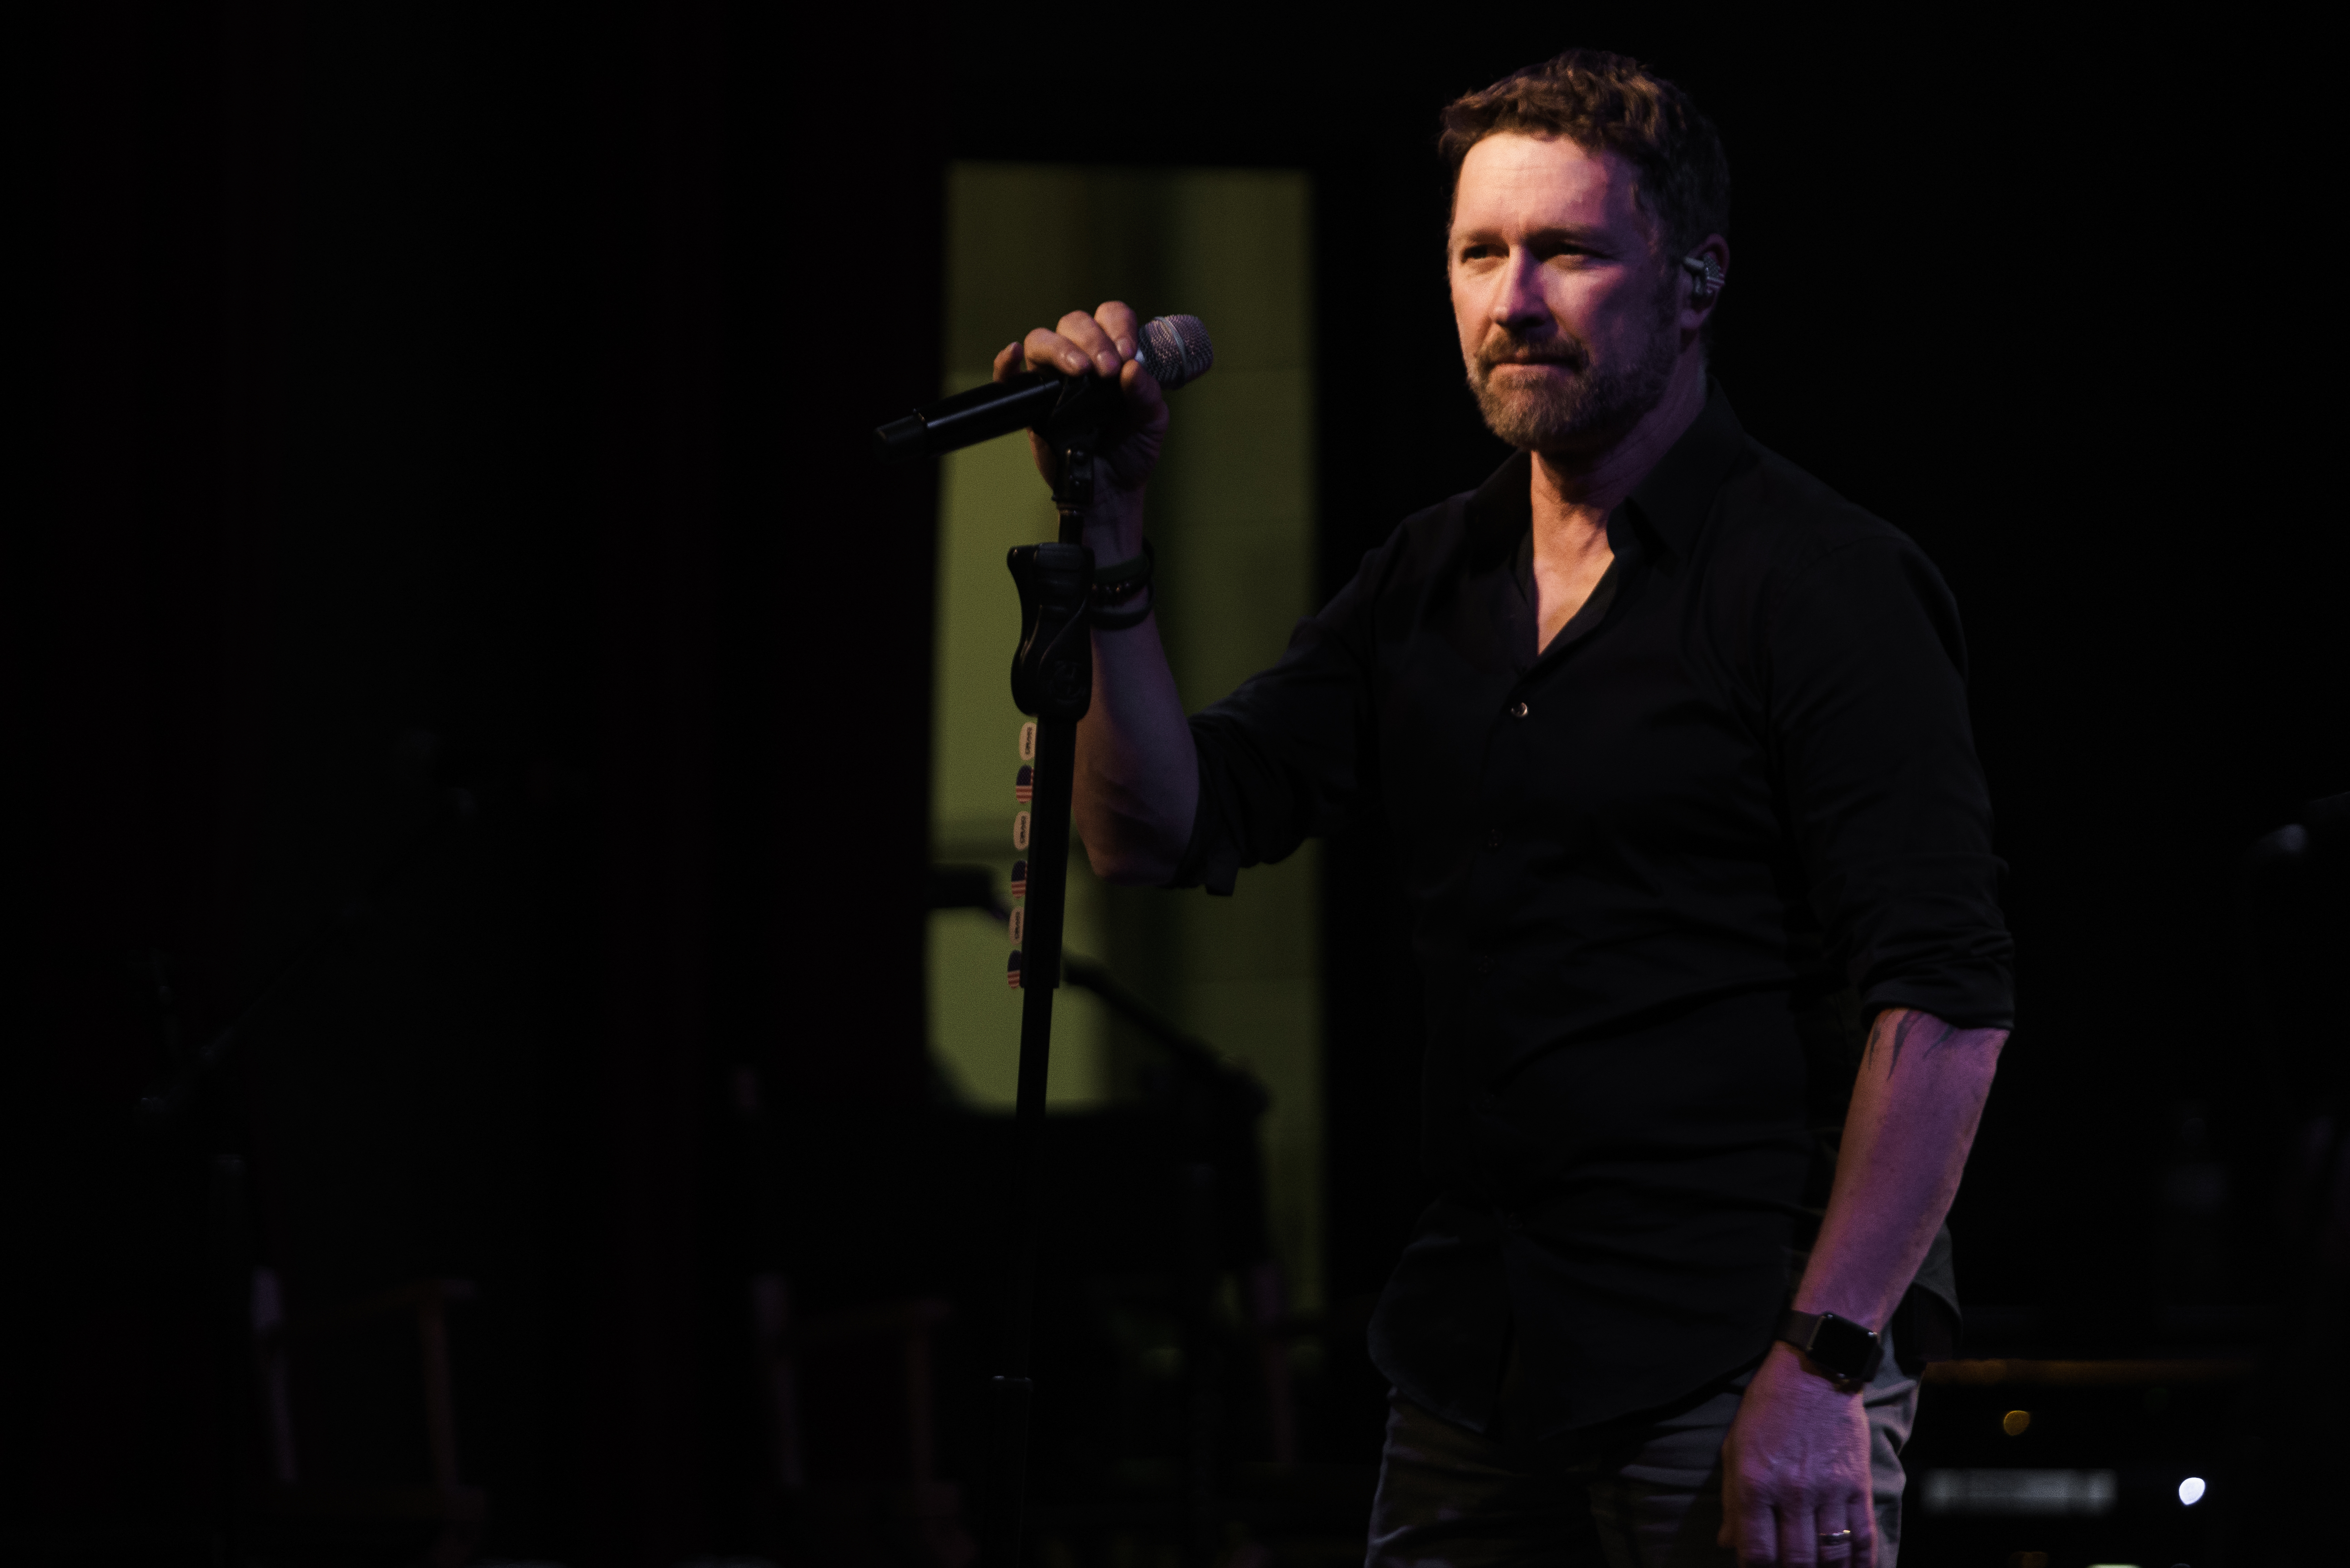 """Craig Morgan wraps """"American Stories Tour"""" with sold-out show in Nashville"""